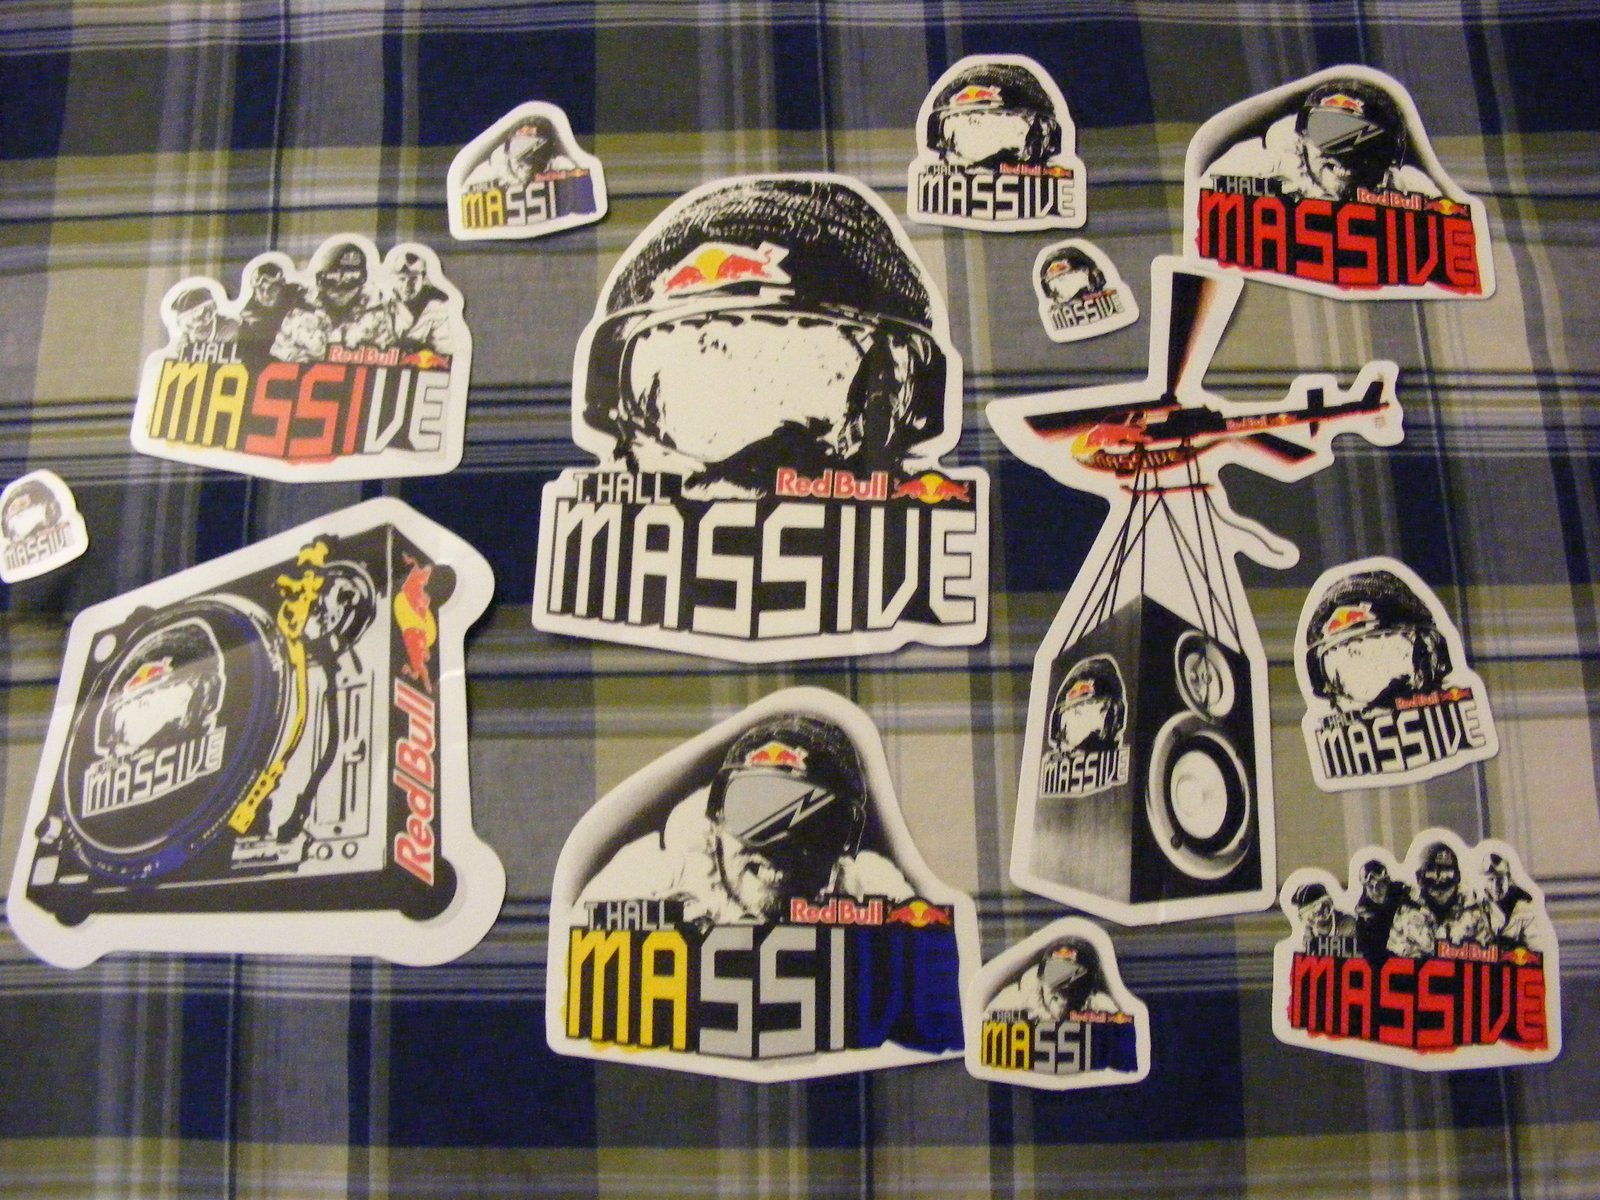 T-hall stickers